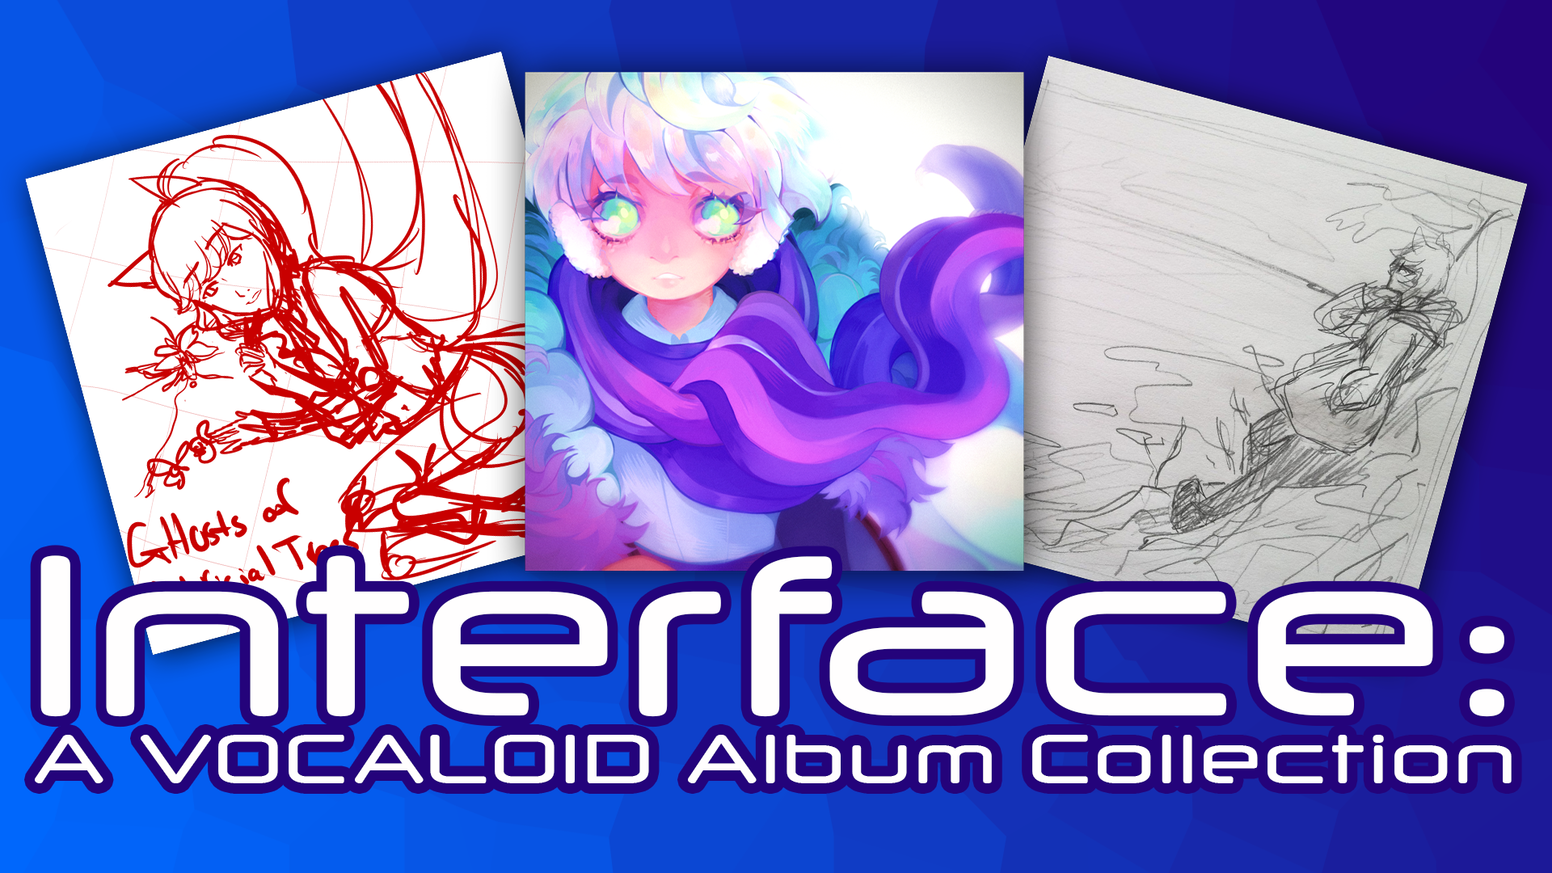 A collection of VOCALOID albums by nostraightanswer, Circus-P, and EmpathP.